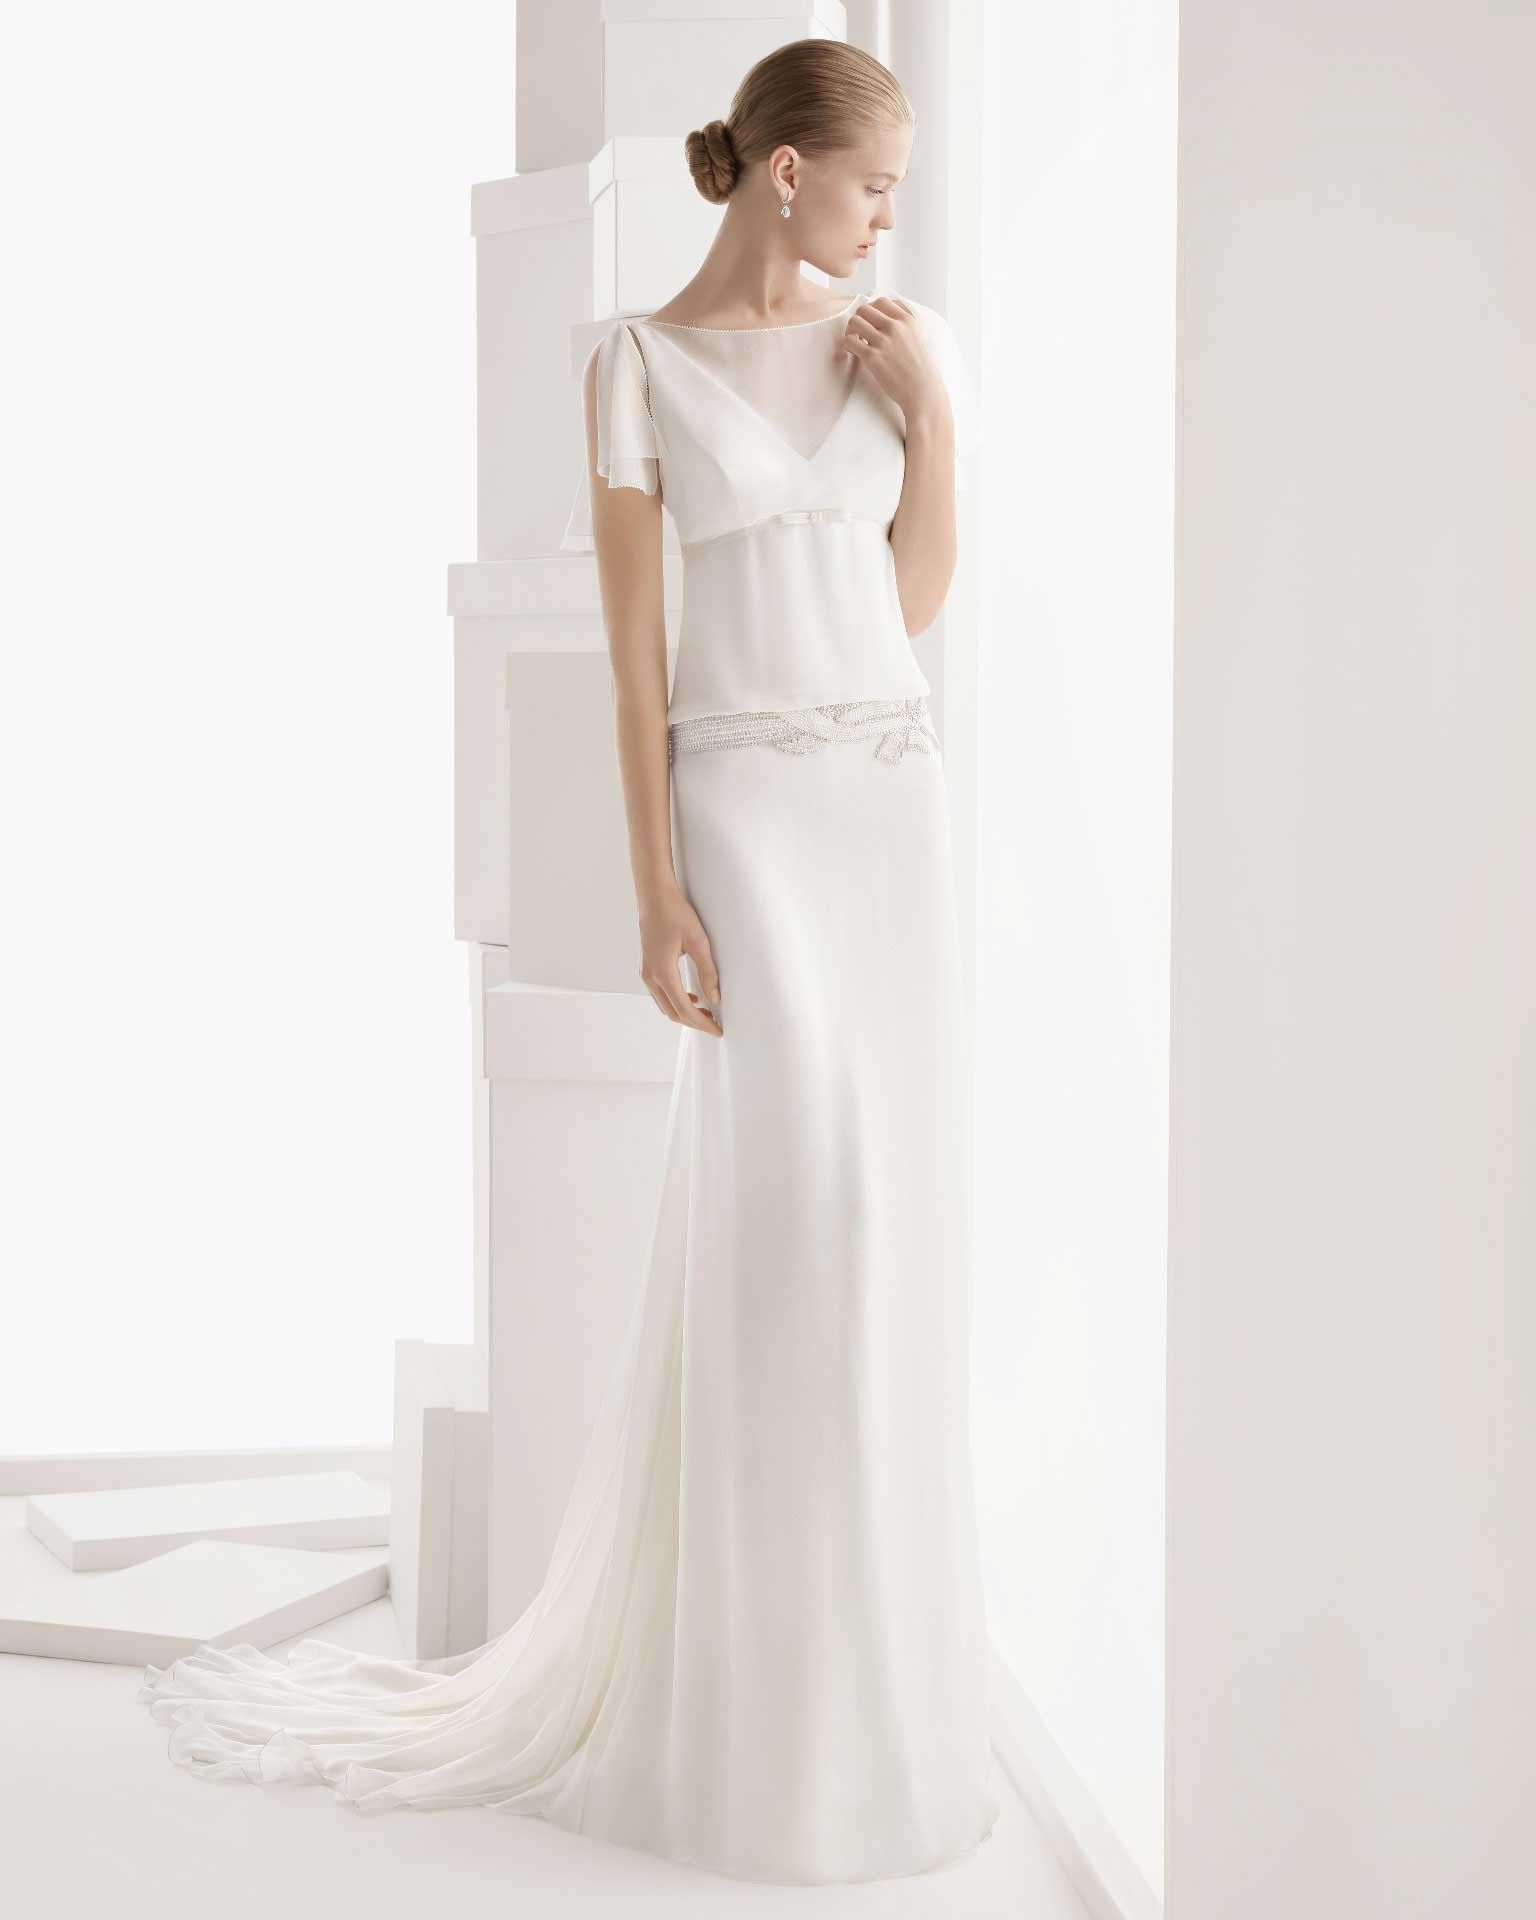 Tank top wedding dresses  Tank Top Court Train Chiffon Sheath Column Wedding Dress  weddings